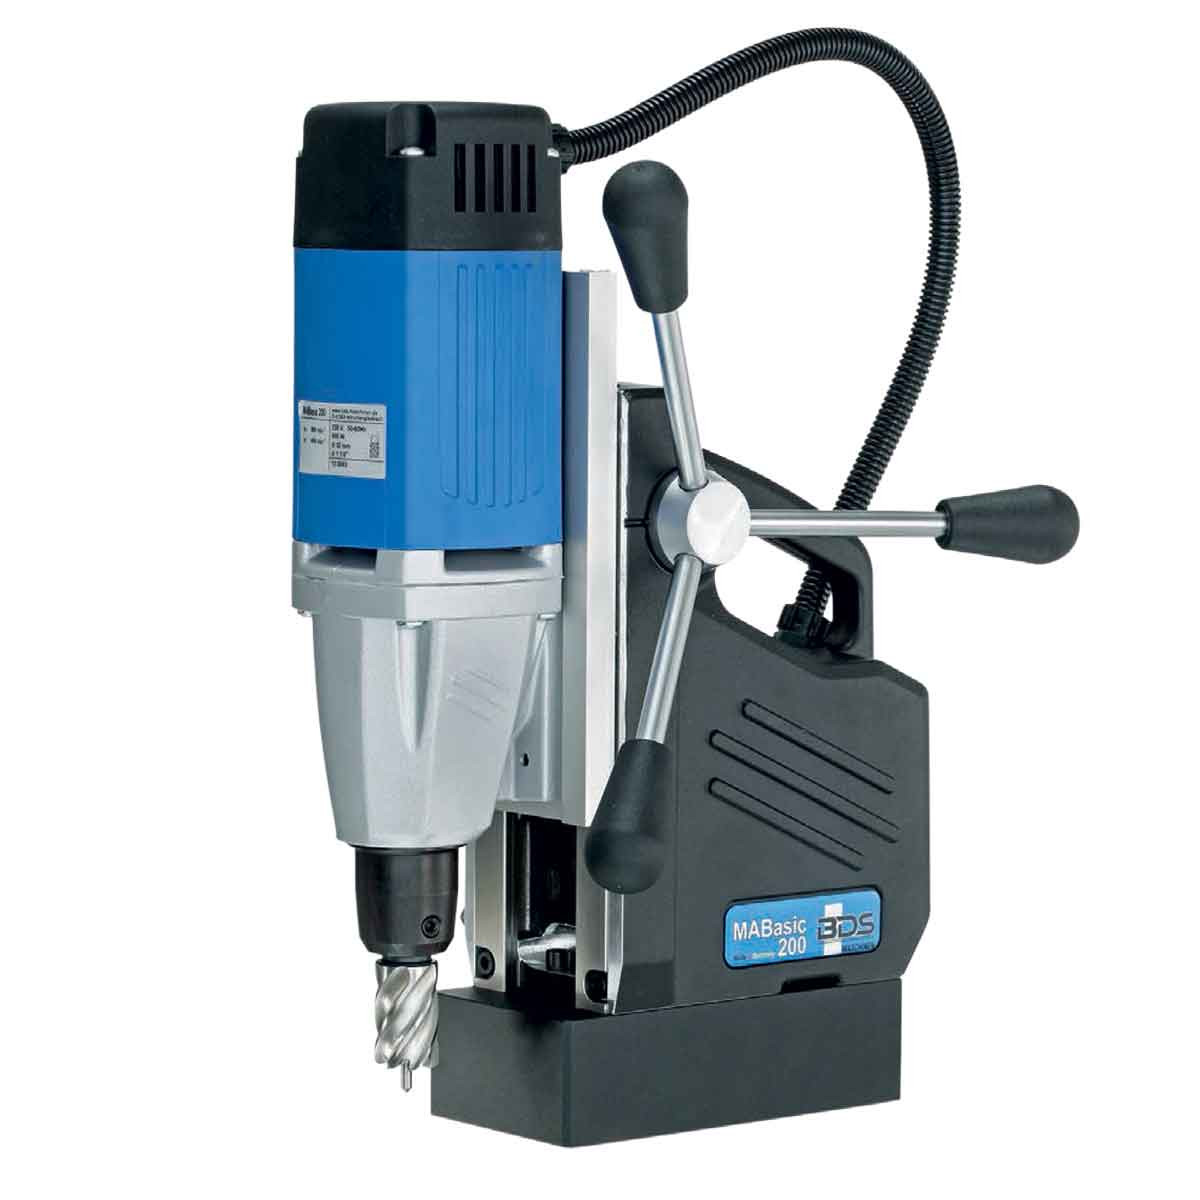 CS Unitec MABasic200 Portable Electric Magnetic Drill